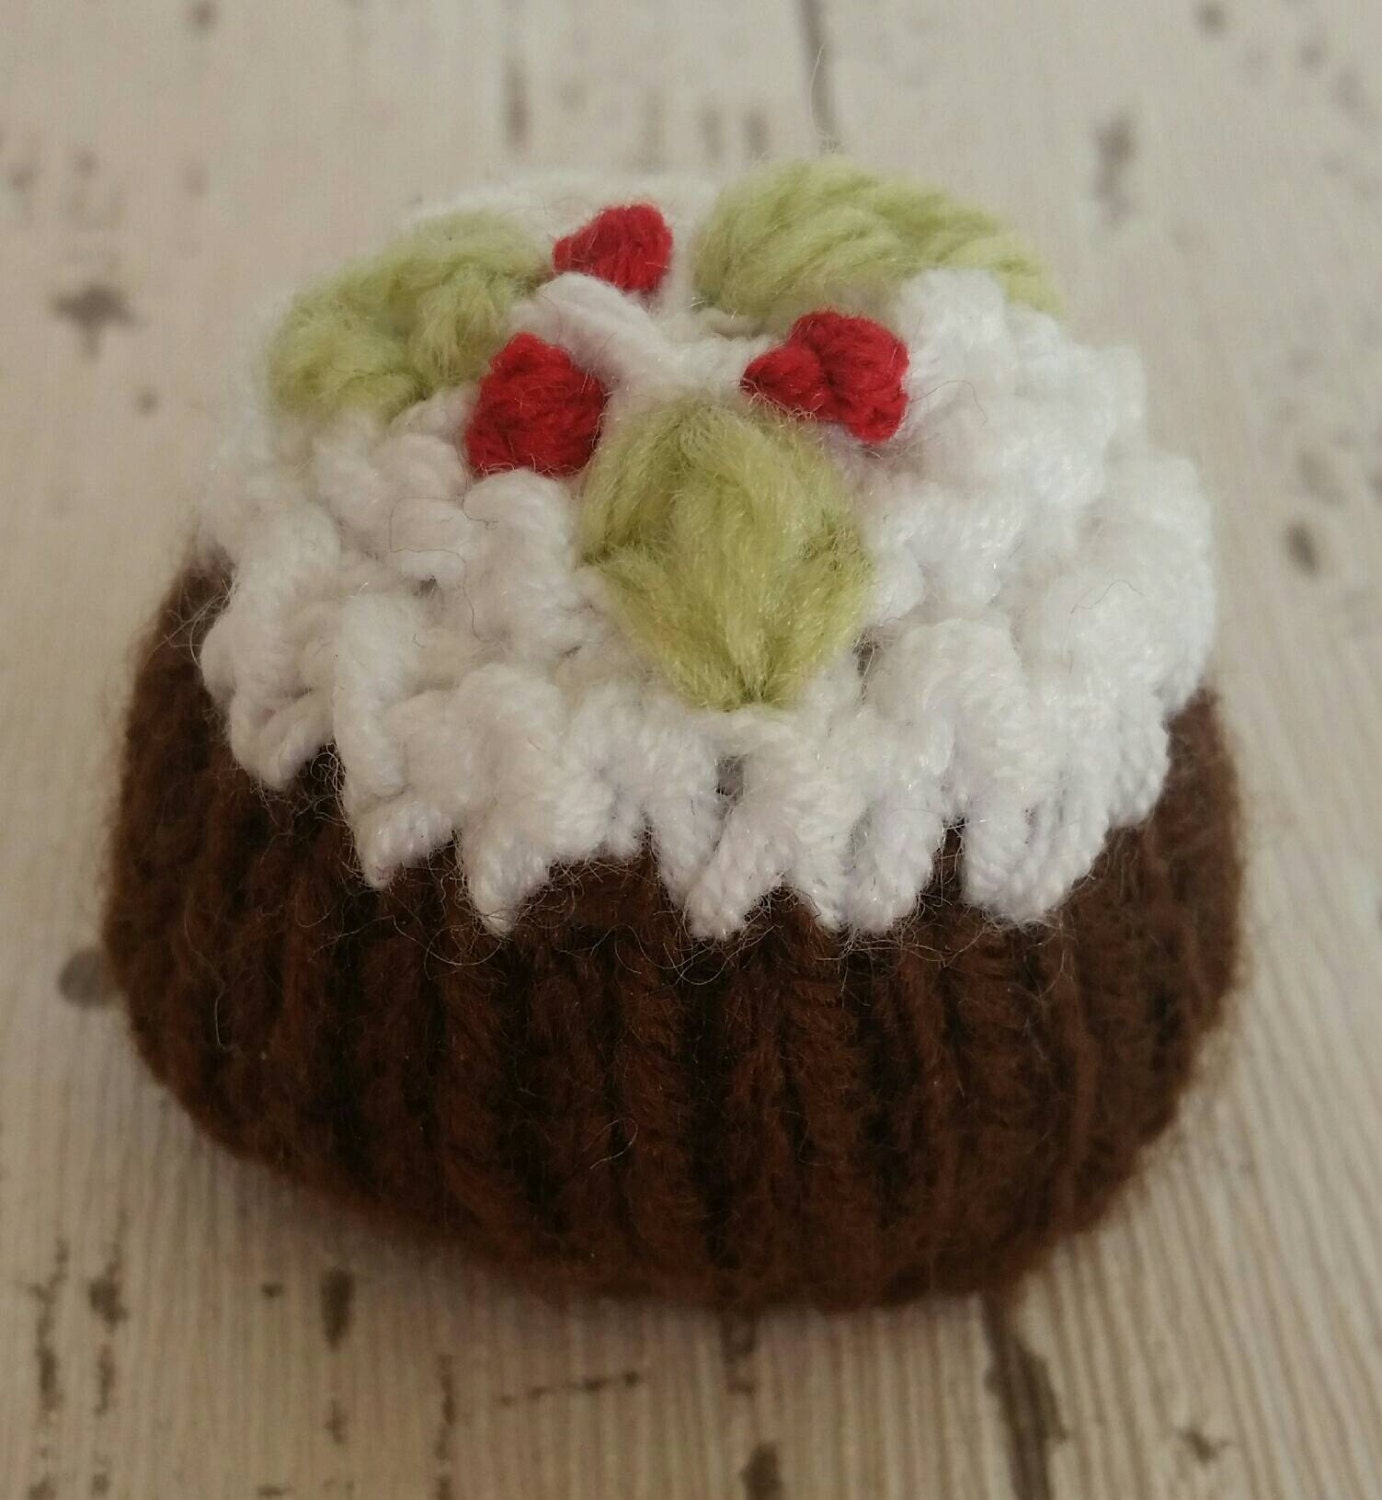 Knitting Pattern Christmas Pudding Ferrero Rocher : Christmas Pudding knitting pattern Lindt Lindor or Ferrero